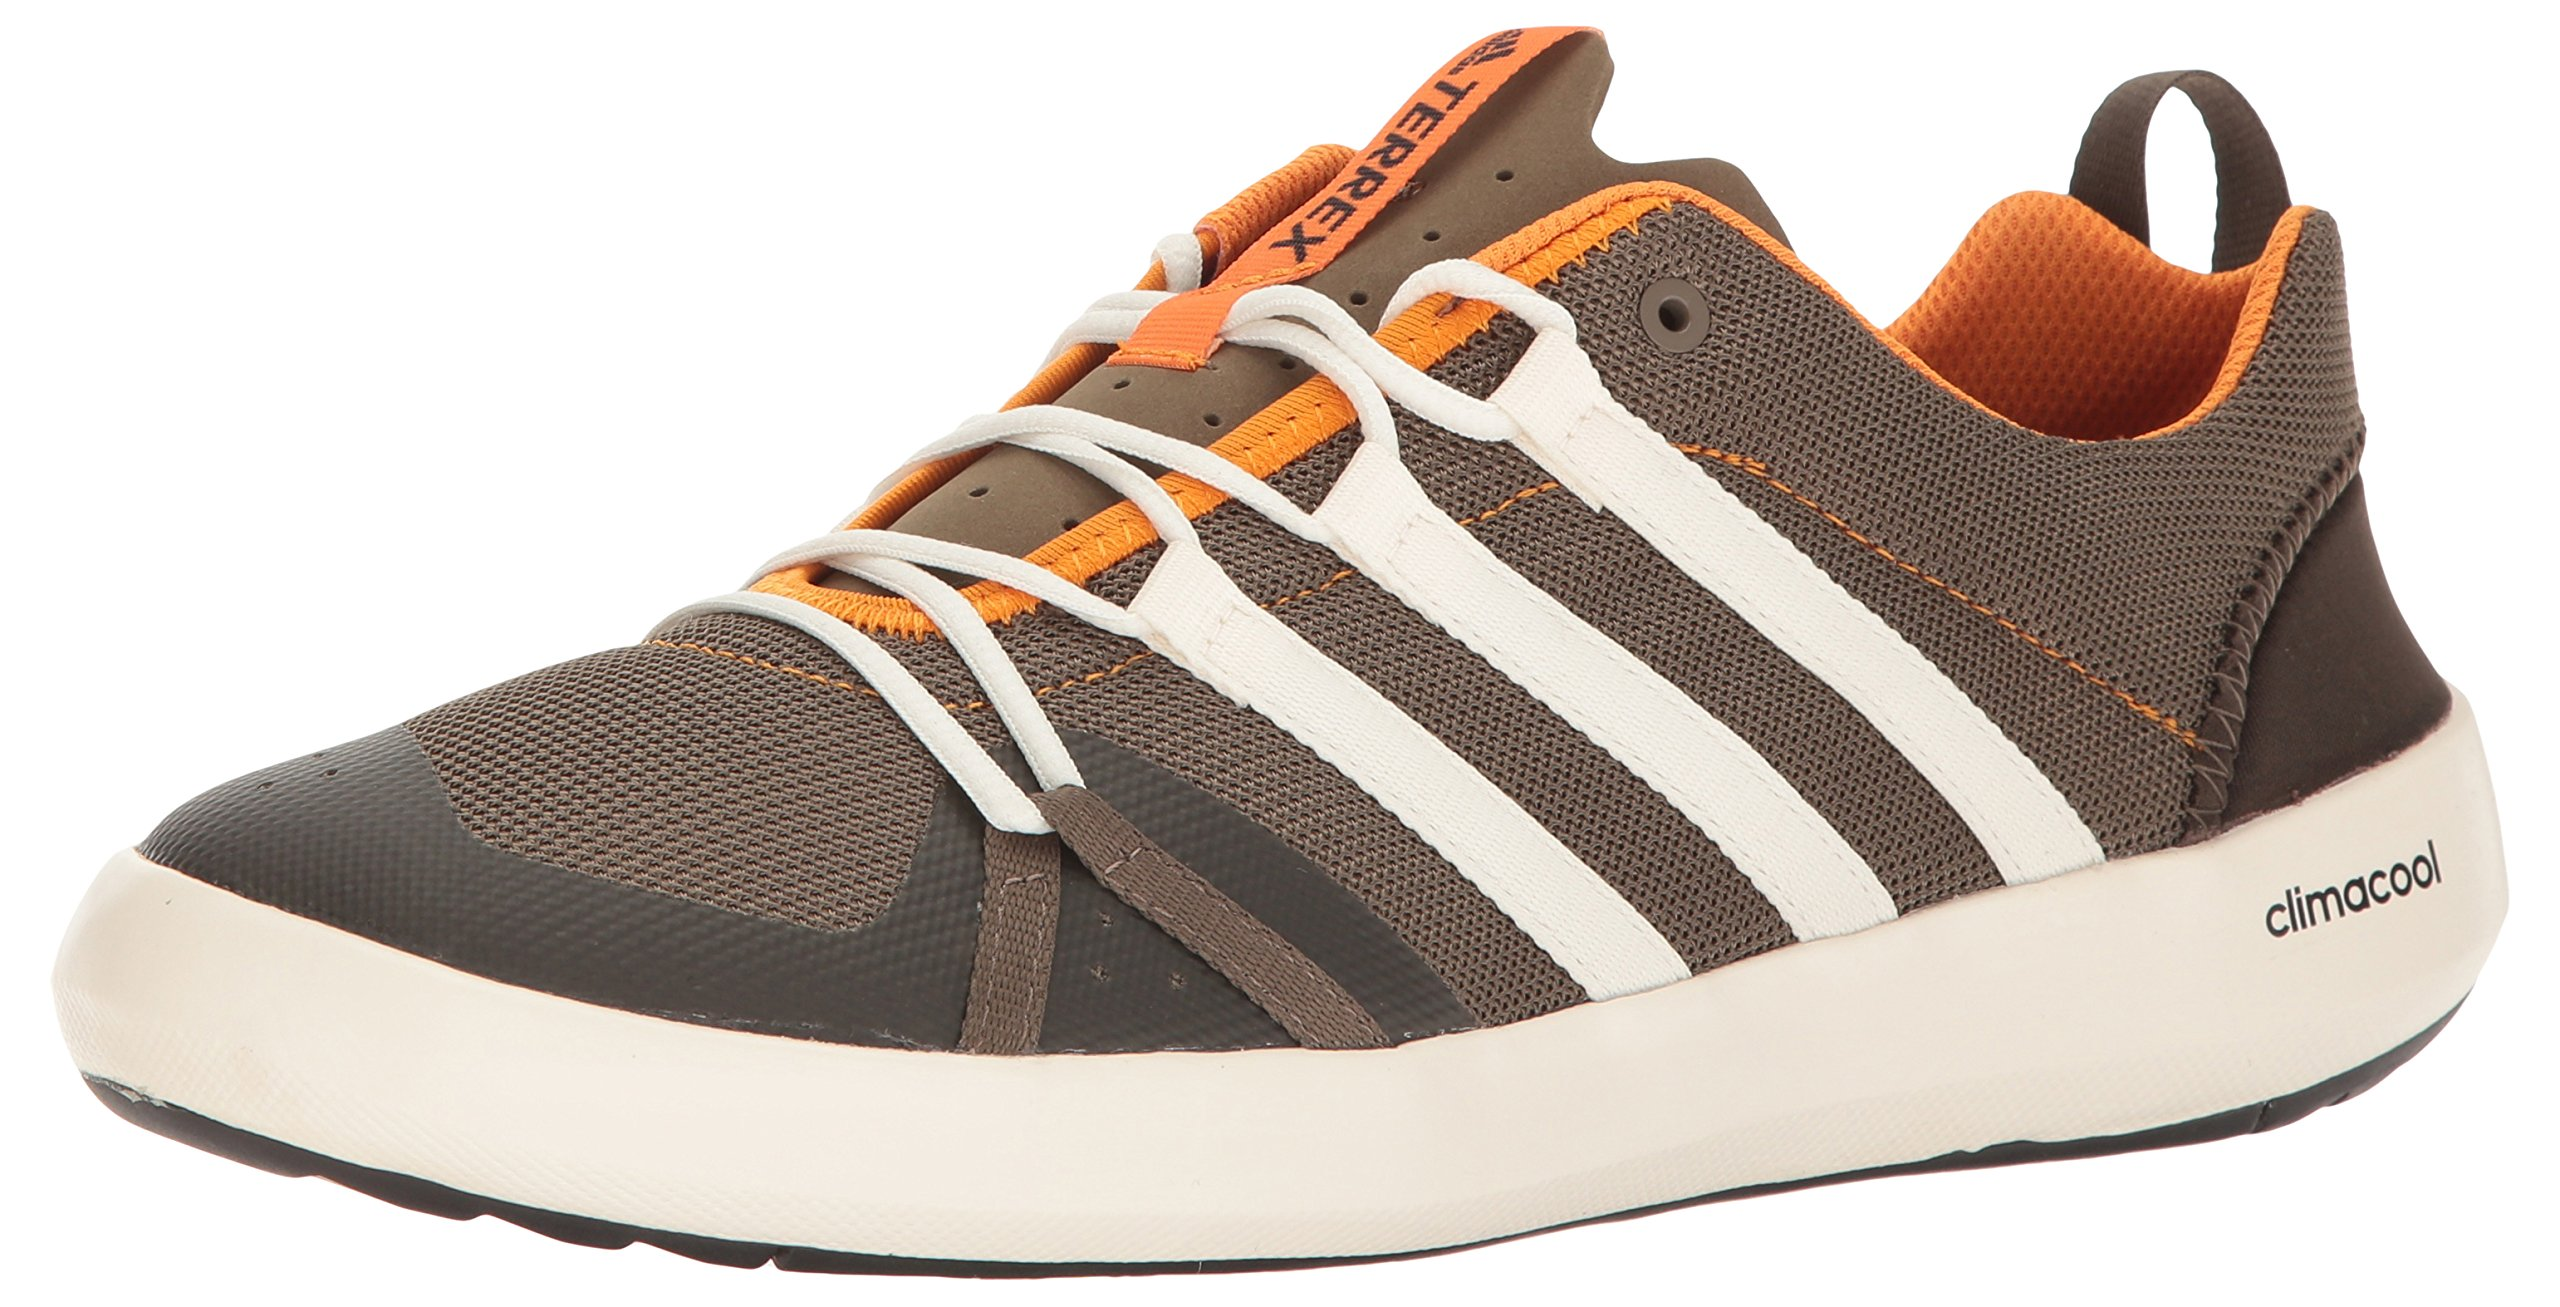 adidas Outdoor Men's Terrex Climacool Boat Water Shoe, Cargo Brown/Chalk White/Umber, 6.5 M US